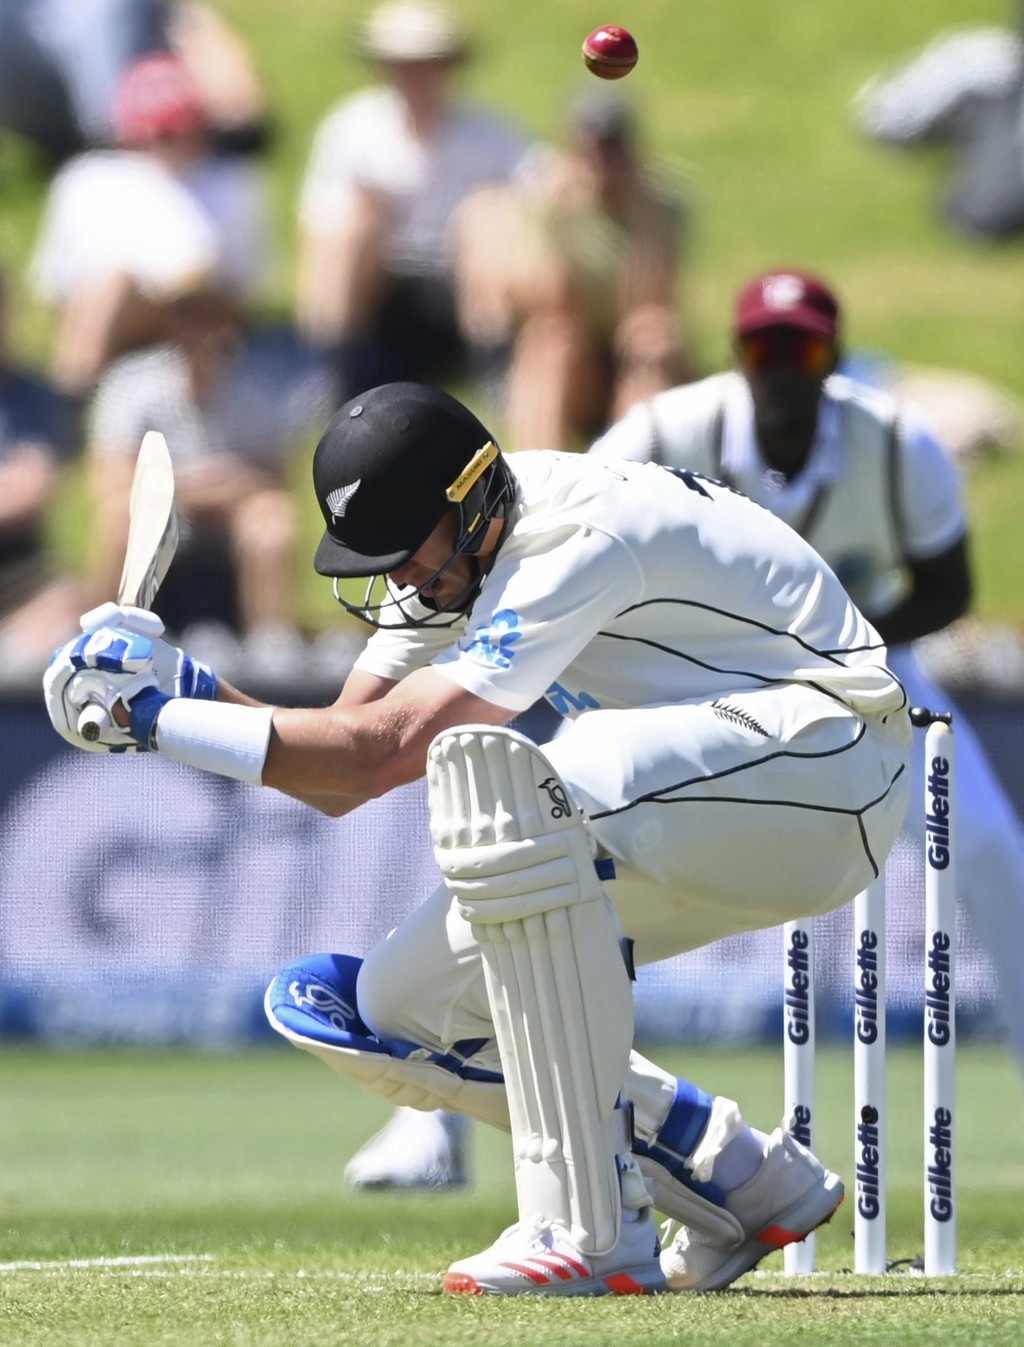 New Zealand's Kyle Jamieson avoids a high delivery from the West Indies during play on the second day of their second cricket test at Basin Reserve in...